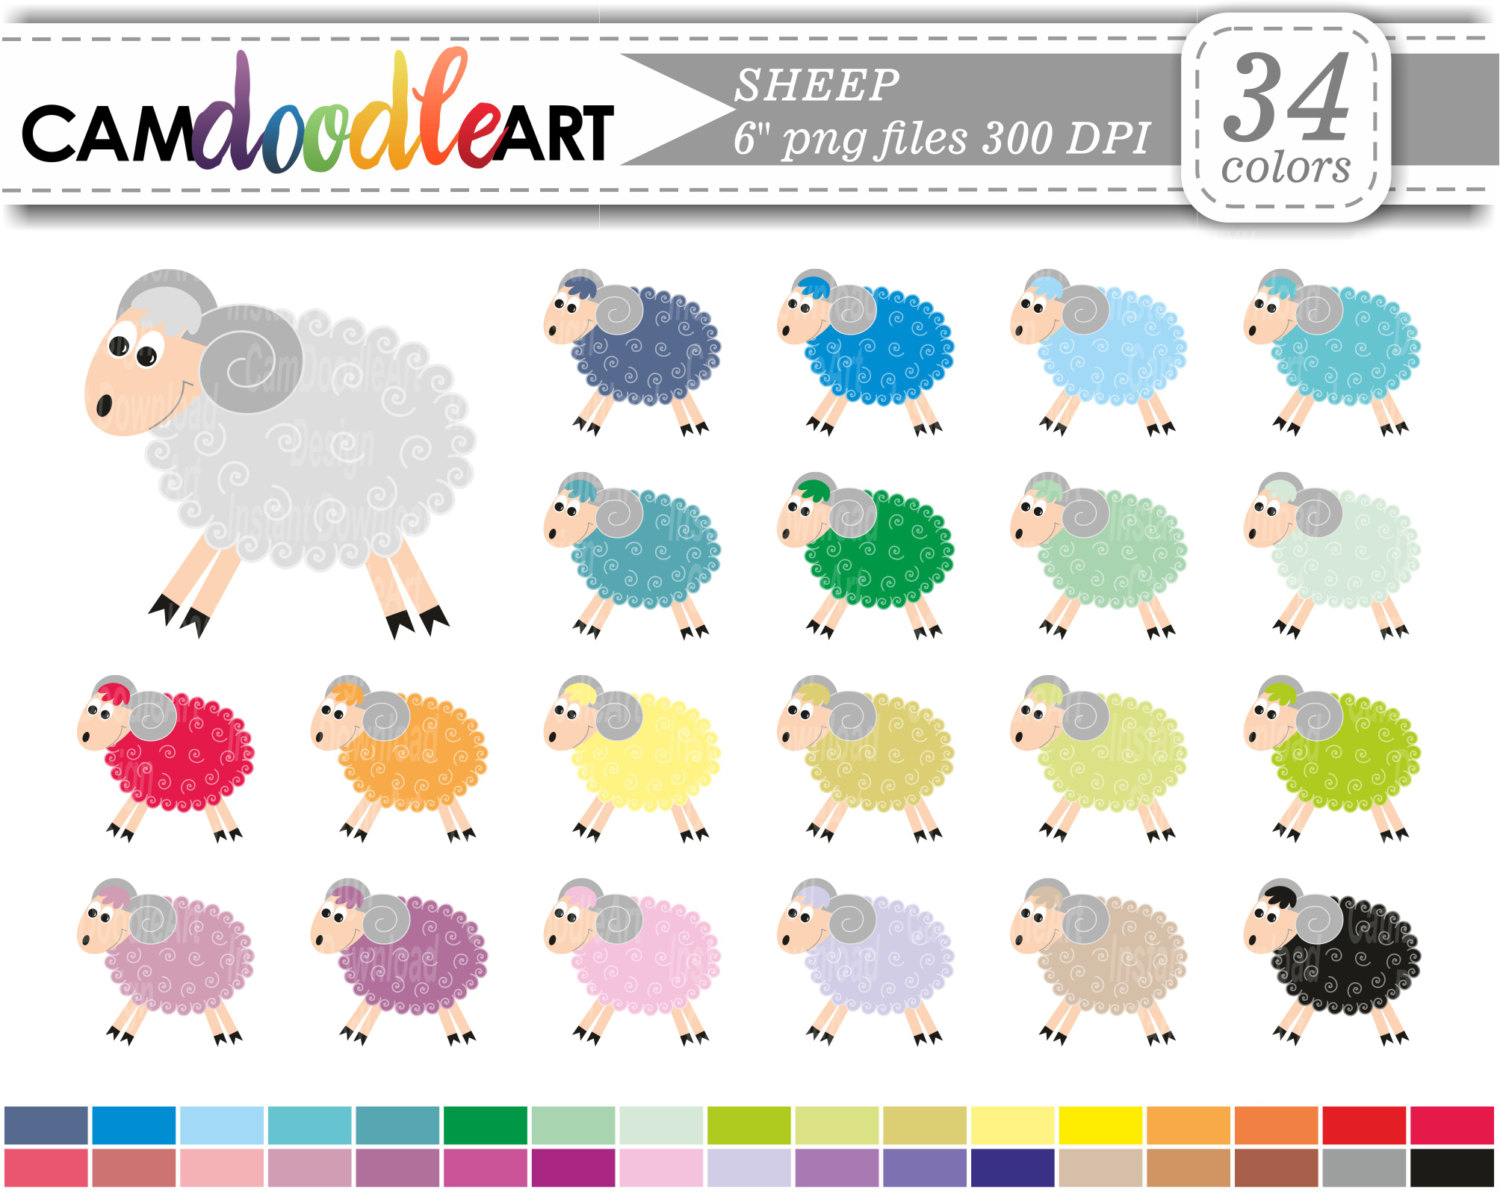 Sheep Clipart,Farm Animal Clipart,Cute Sheep,Funny Sheep.